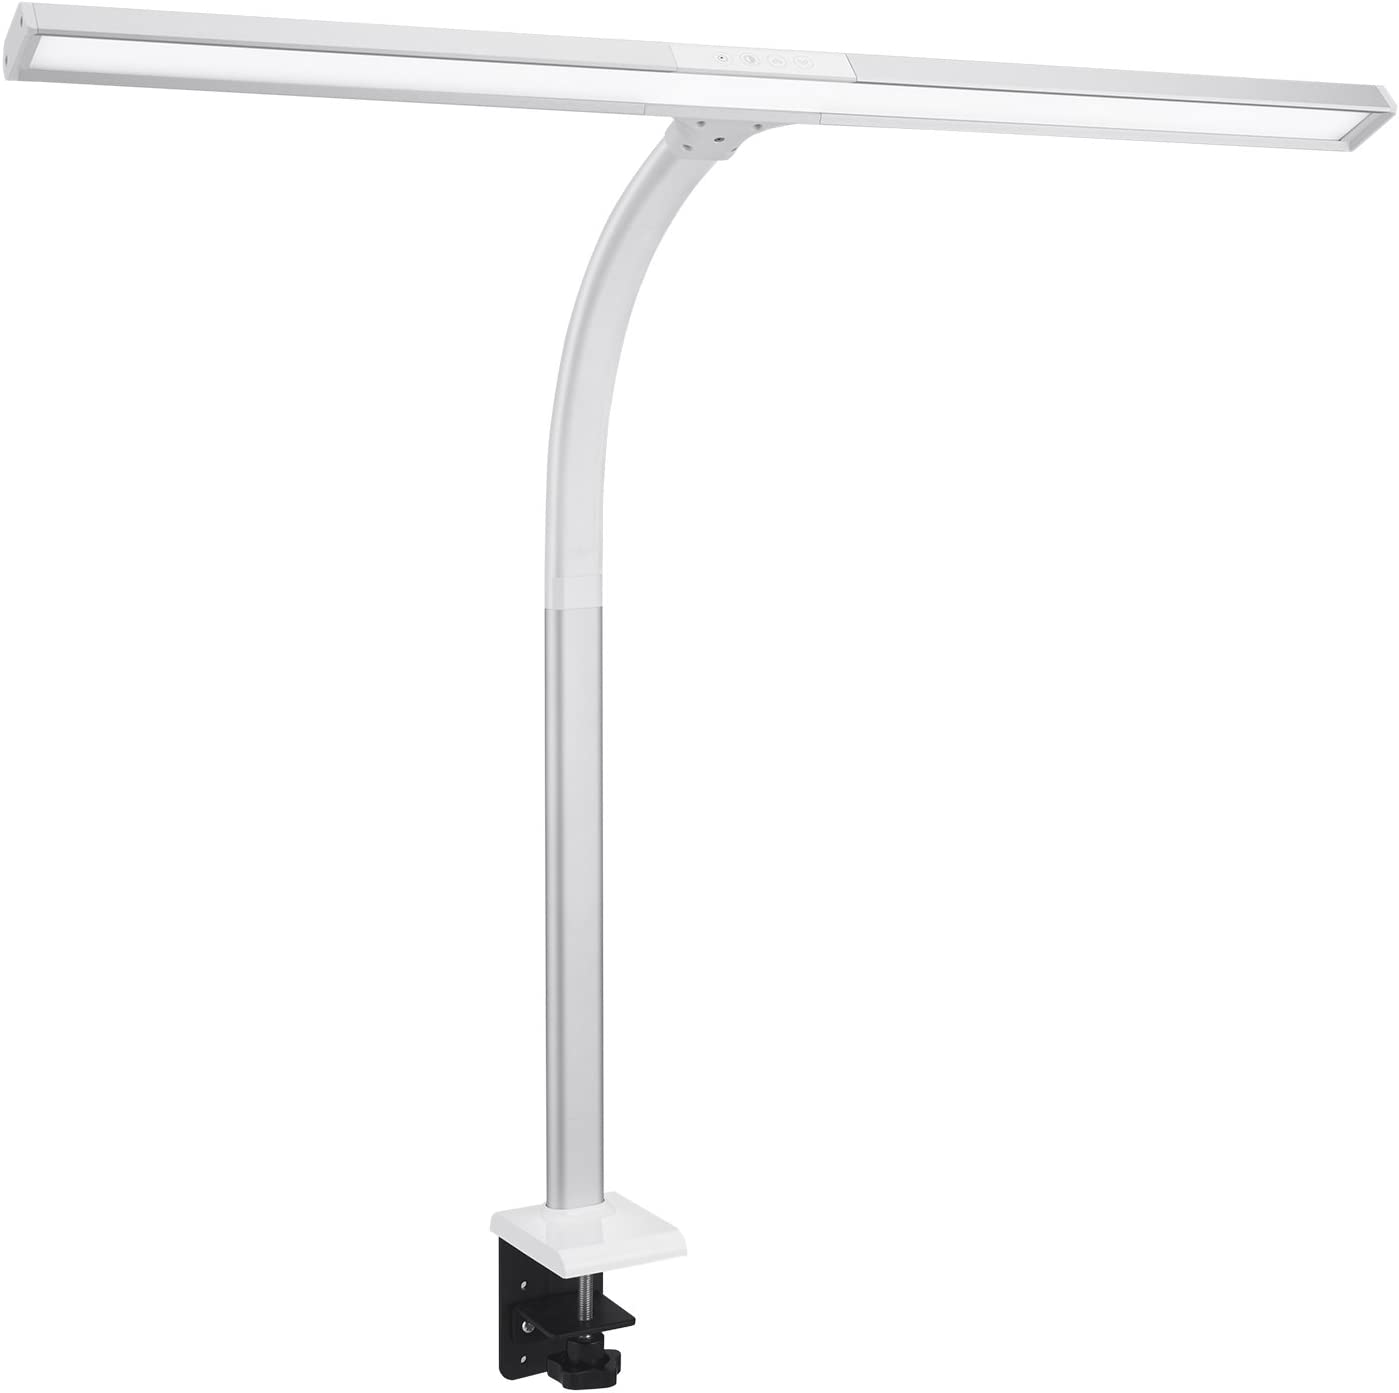 Amazon Com Phive Led Task Lamp 20 Watt Super Bright Desk Lamp With Clamp Dimmable Gooseneck Monitor Lamp 4 Color Modes 5 Level Dimmer Memory Function Highly Adjustable Office Light Workbench Lamp Silver Home